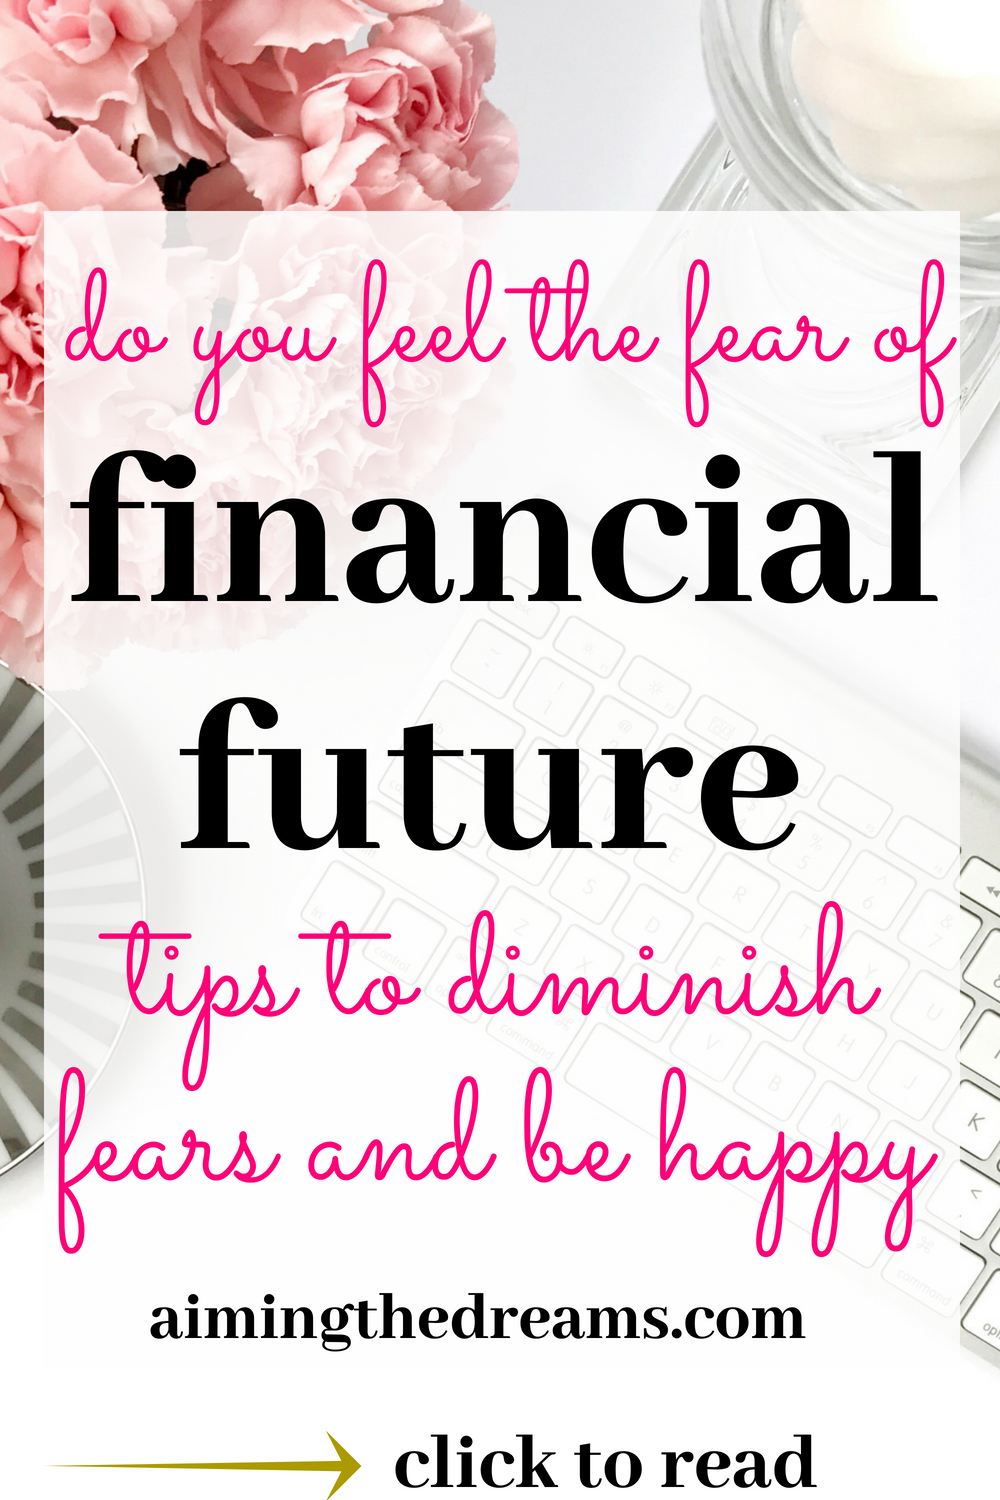 #Tips to remove# financial #planning fears for #beginners. As you go on saving and investing, you will feel more comfortable with your finances. click to read.